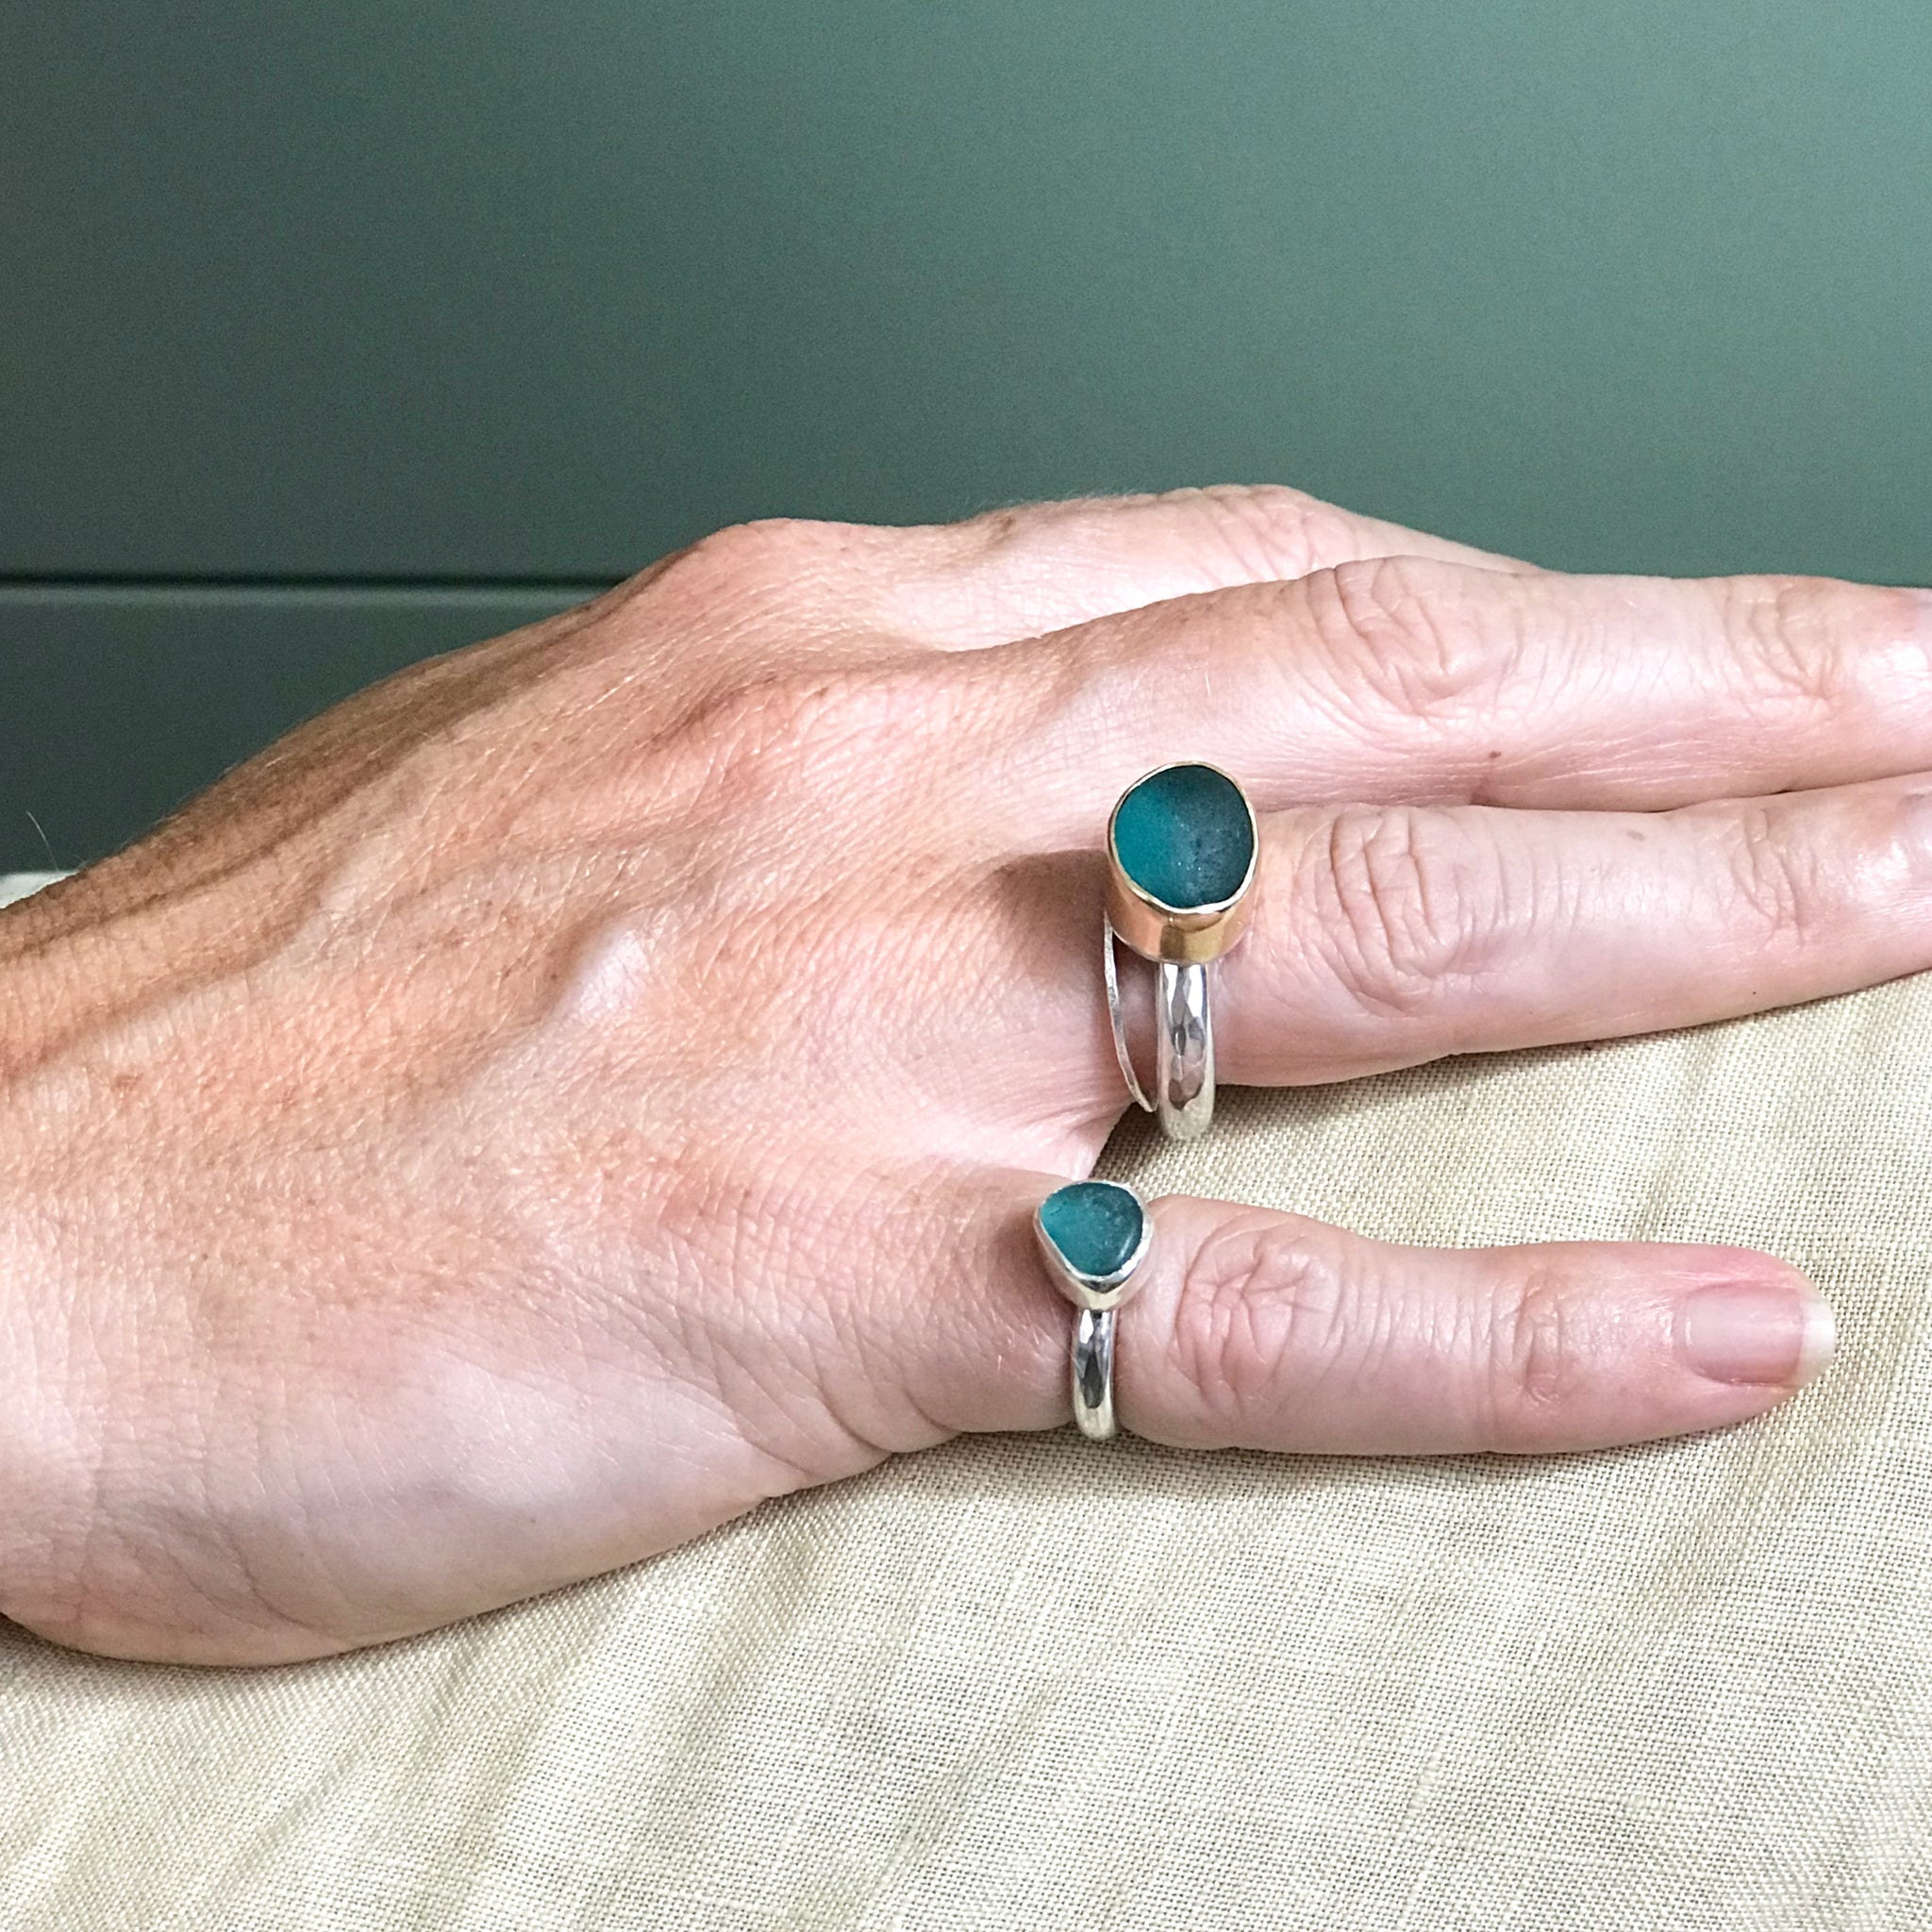 teal seaglass rings set in silver